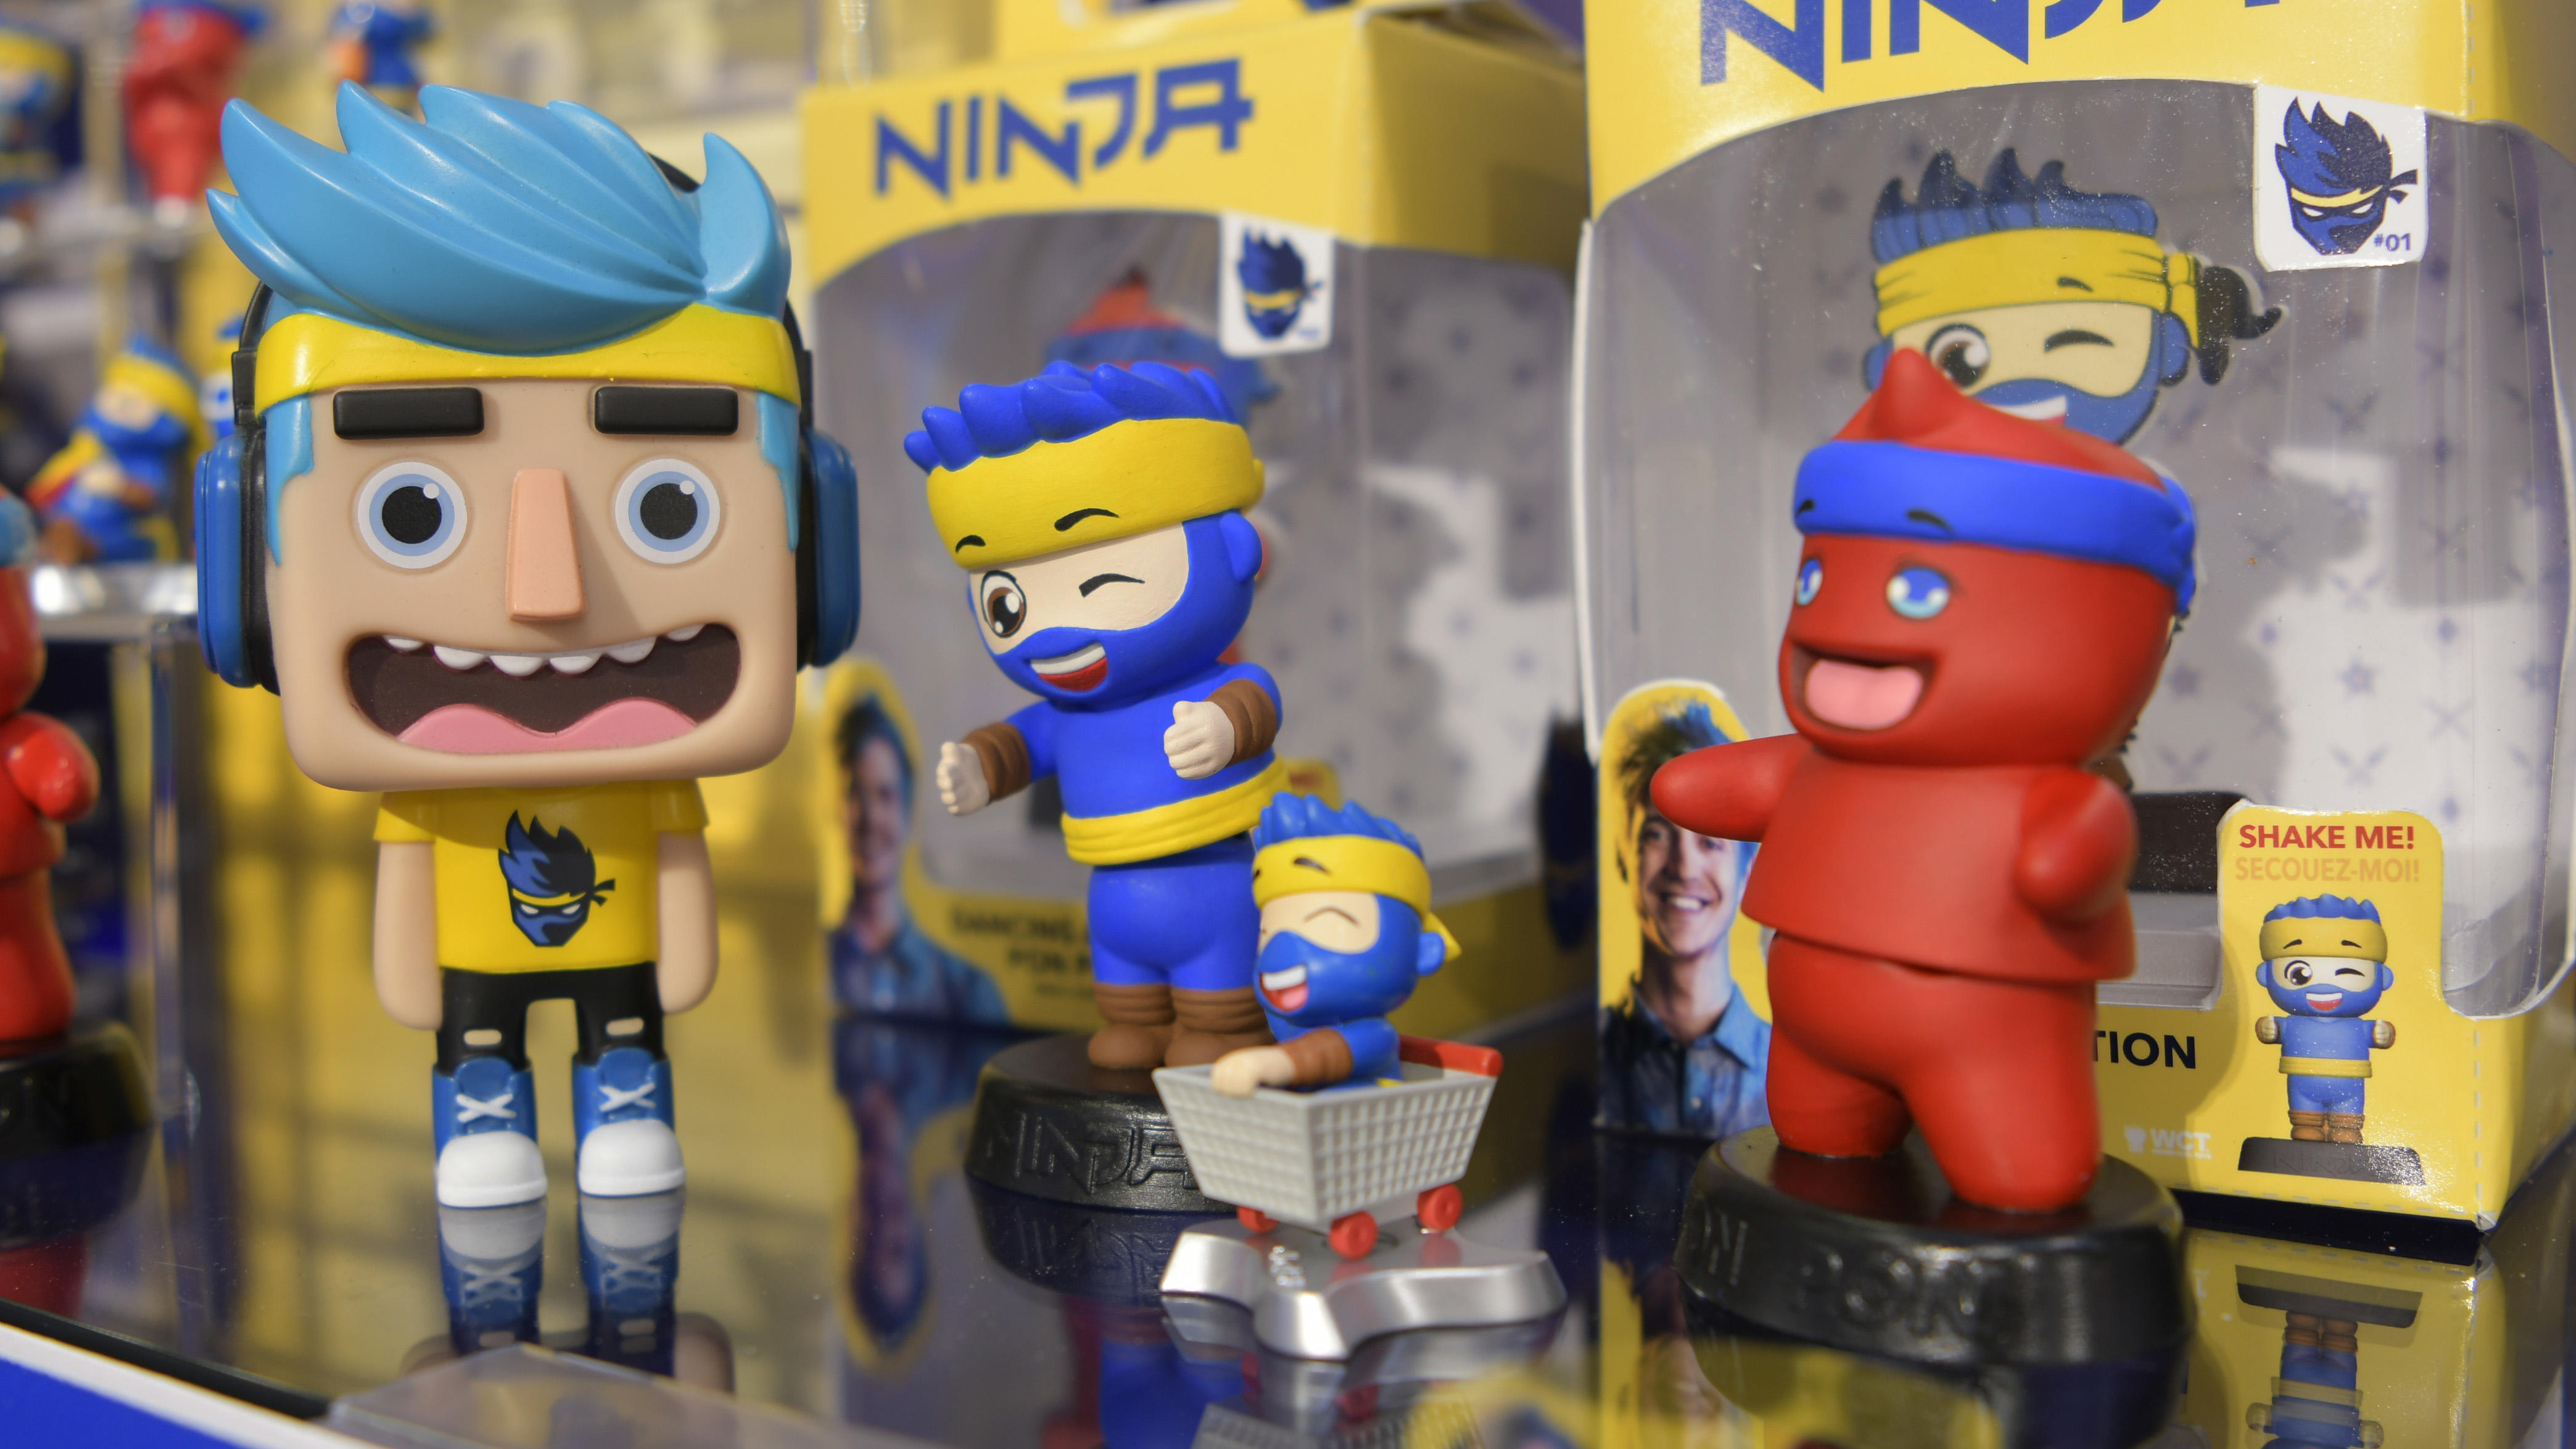 ninja-twitch-toys-ny-toy-fair-2019-0011